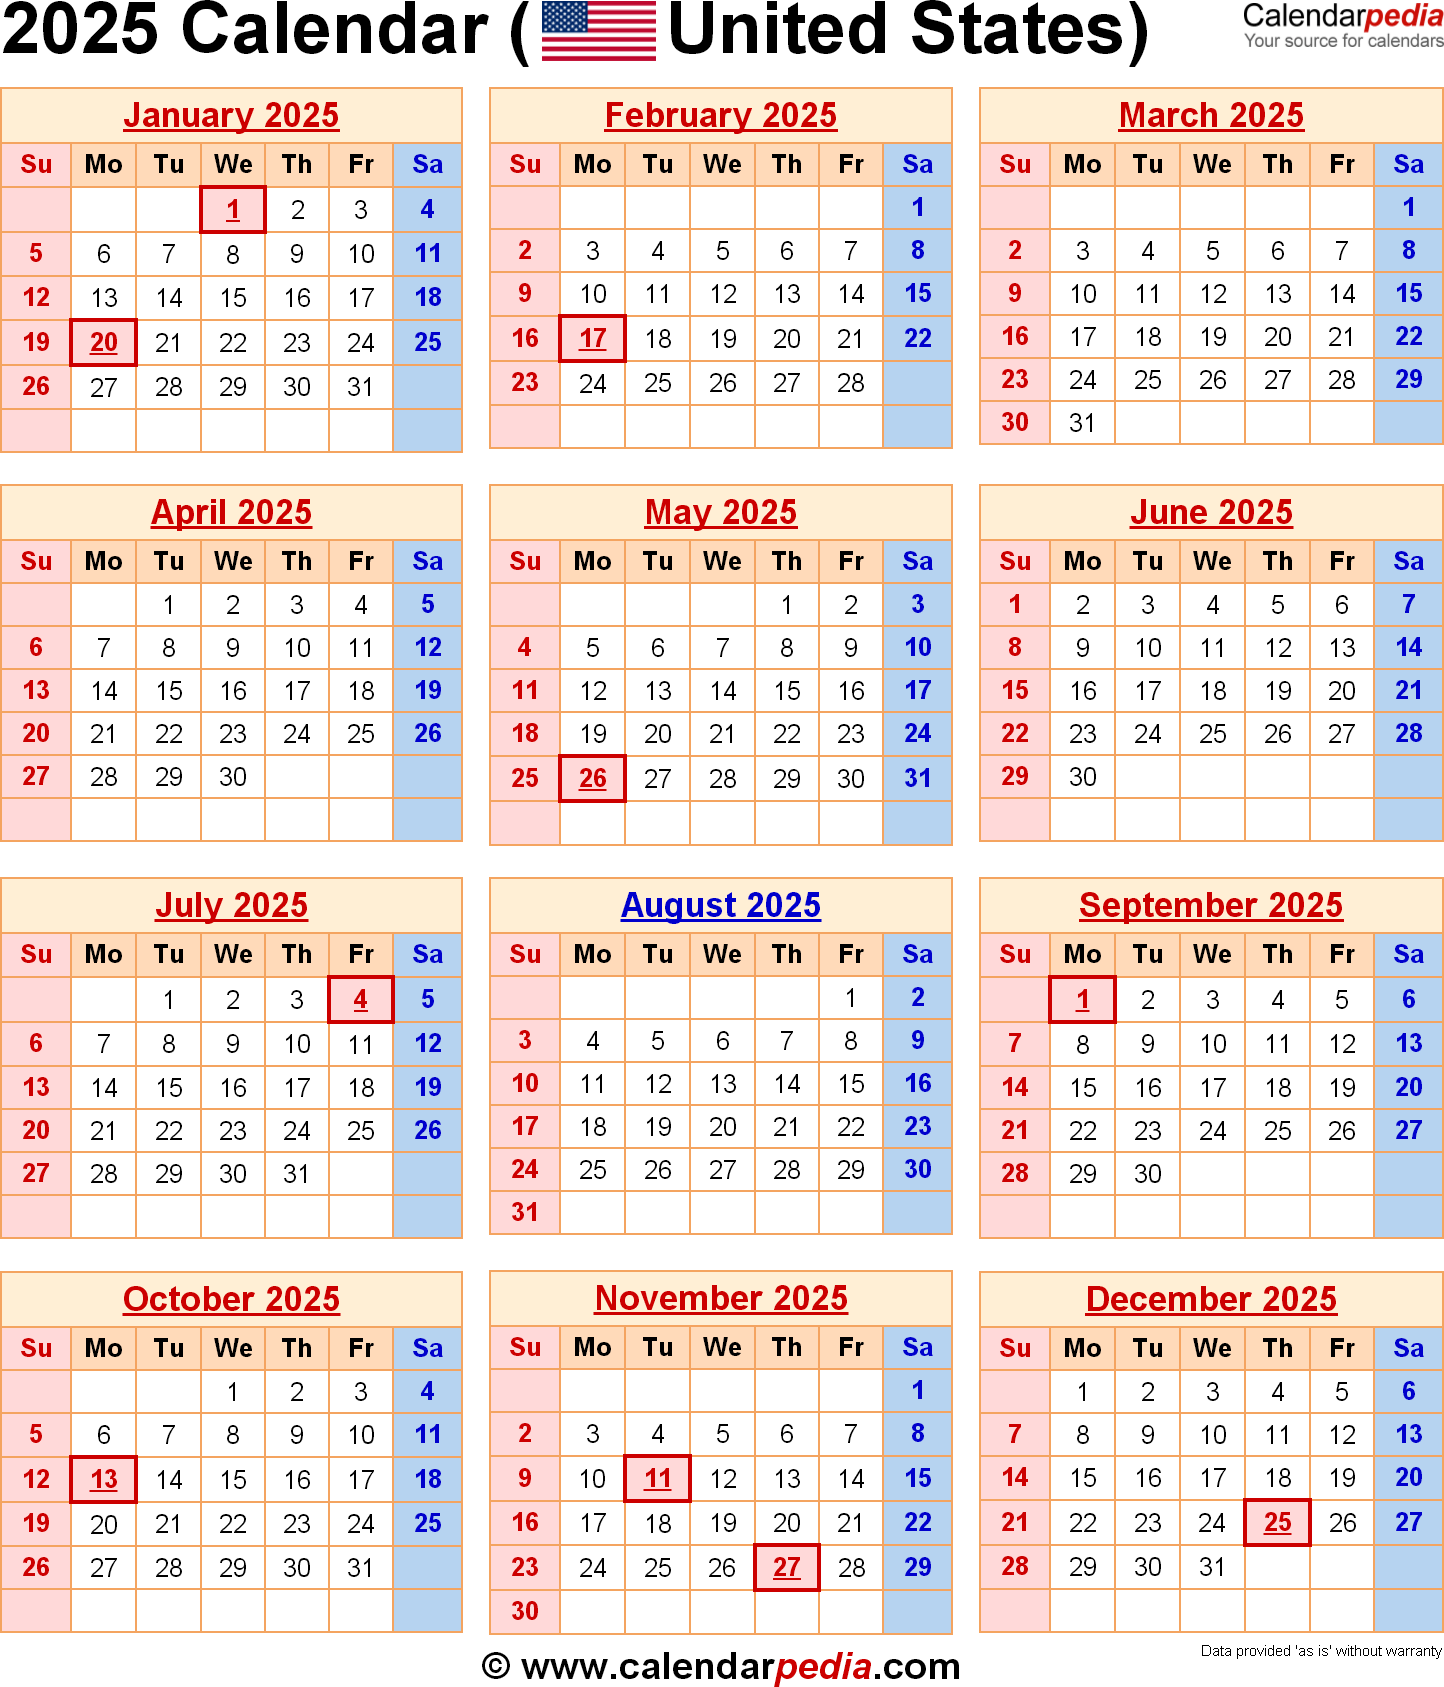 Year 2019 Calendar United States With 2025 For The USA US Federal Holidays